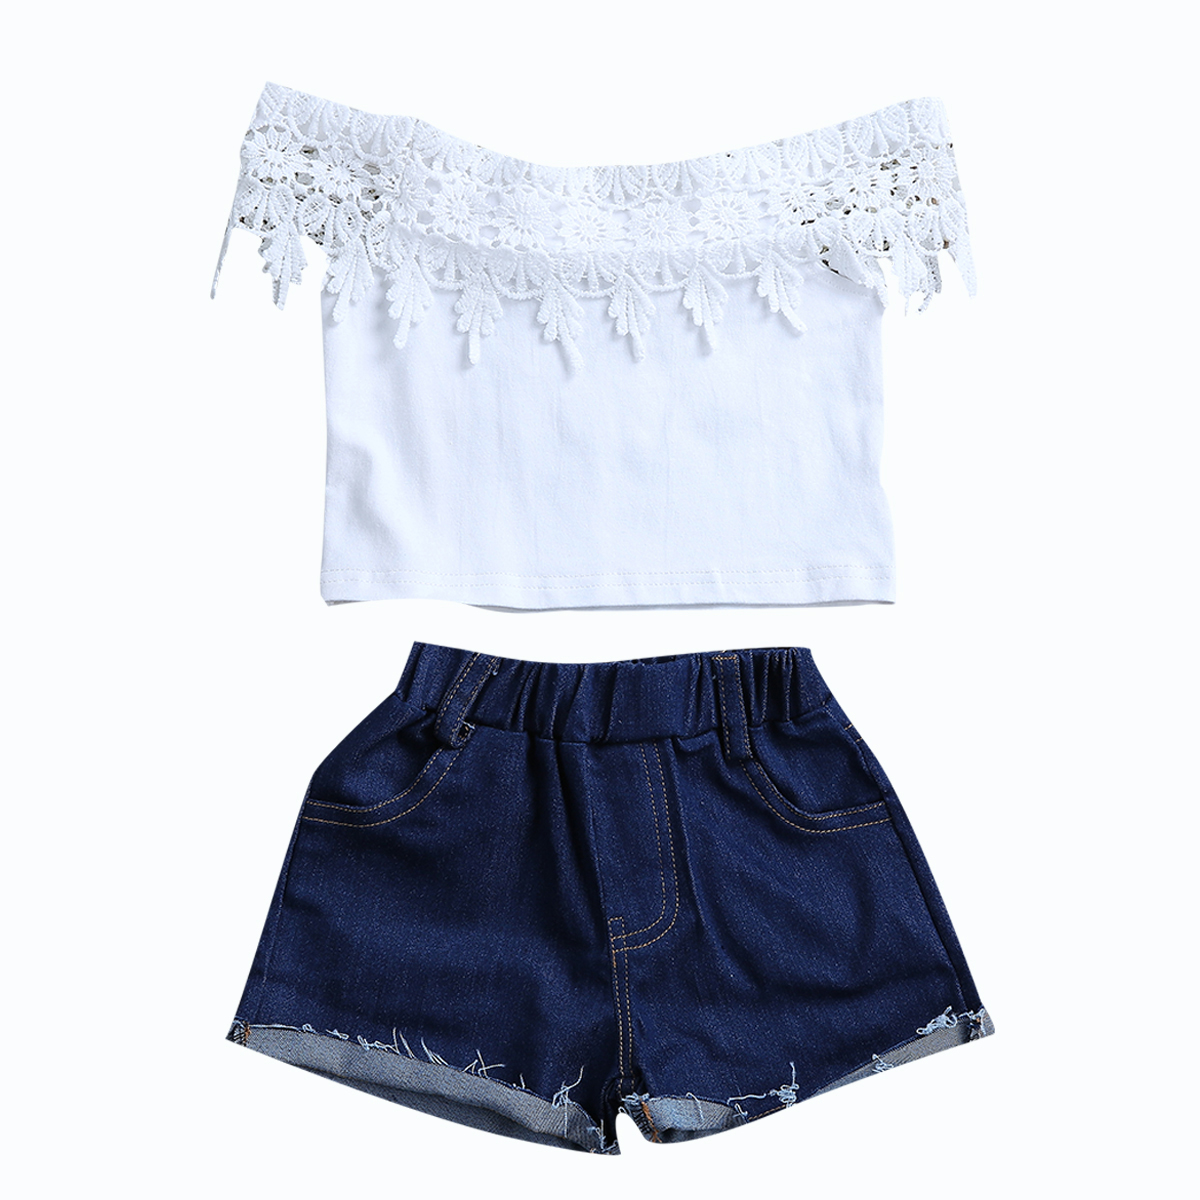 2017 New Fashion Children Girls Clothes Off Shoulder Lace Crop Tops White+Denim Shorts Hot Pant 2PCS Outfits Kids Clothing Set 2017 new fashion kids clothes off shoulder camo crop tops hole jean denim pant 2pcs outfit summer suit children clothing set